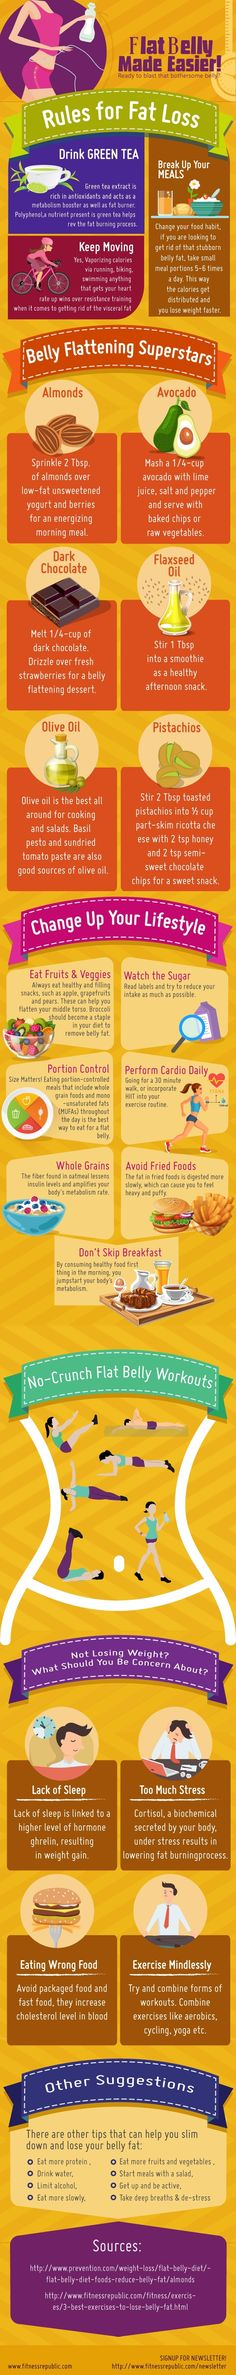 Infographic: Tips For Attaining A Flat Stomach, What To Eat And Do To Burn Fat - DesignTAXI.com #weightlossrecipes